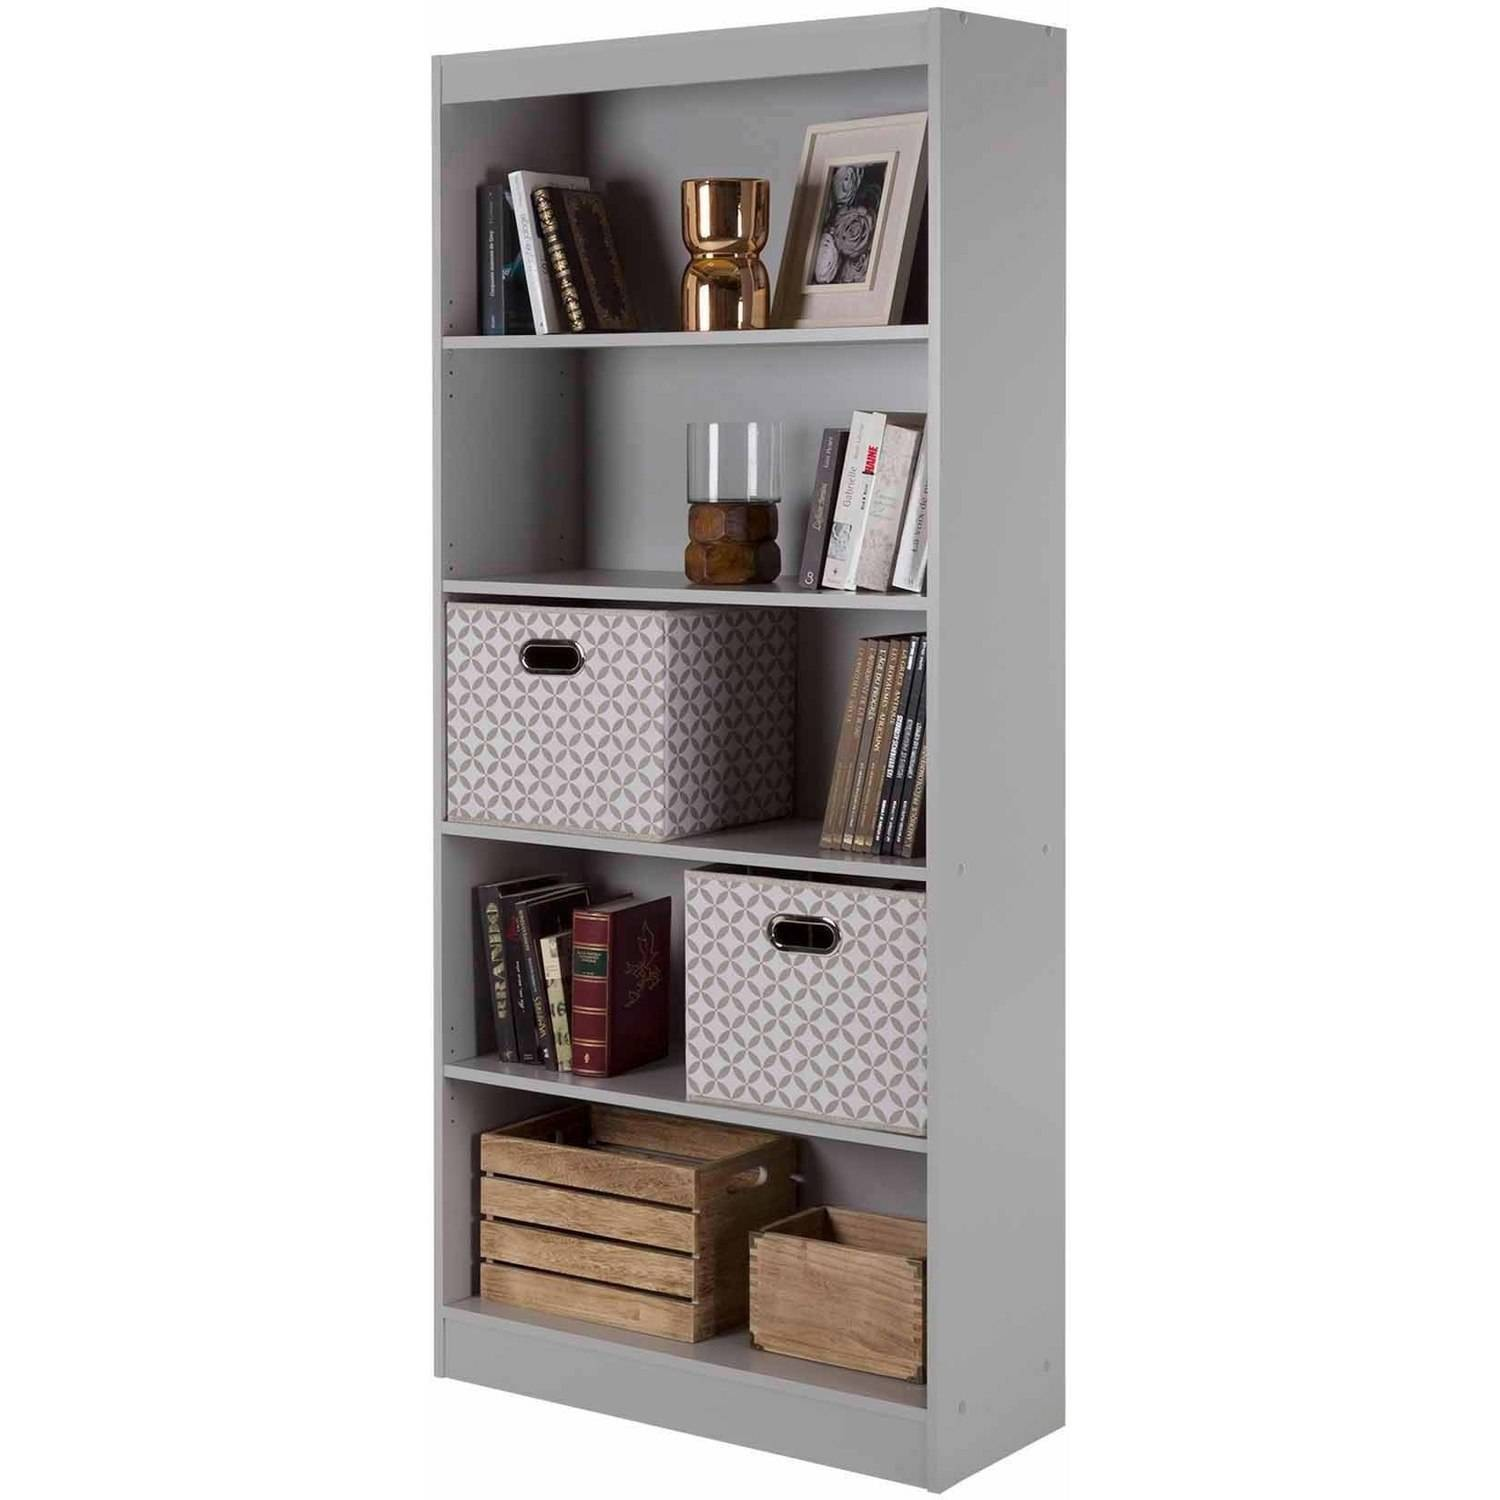 south collection axess spin shore pure p qlt bookcase hei wid prod shelf white